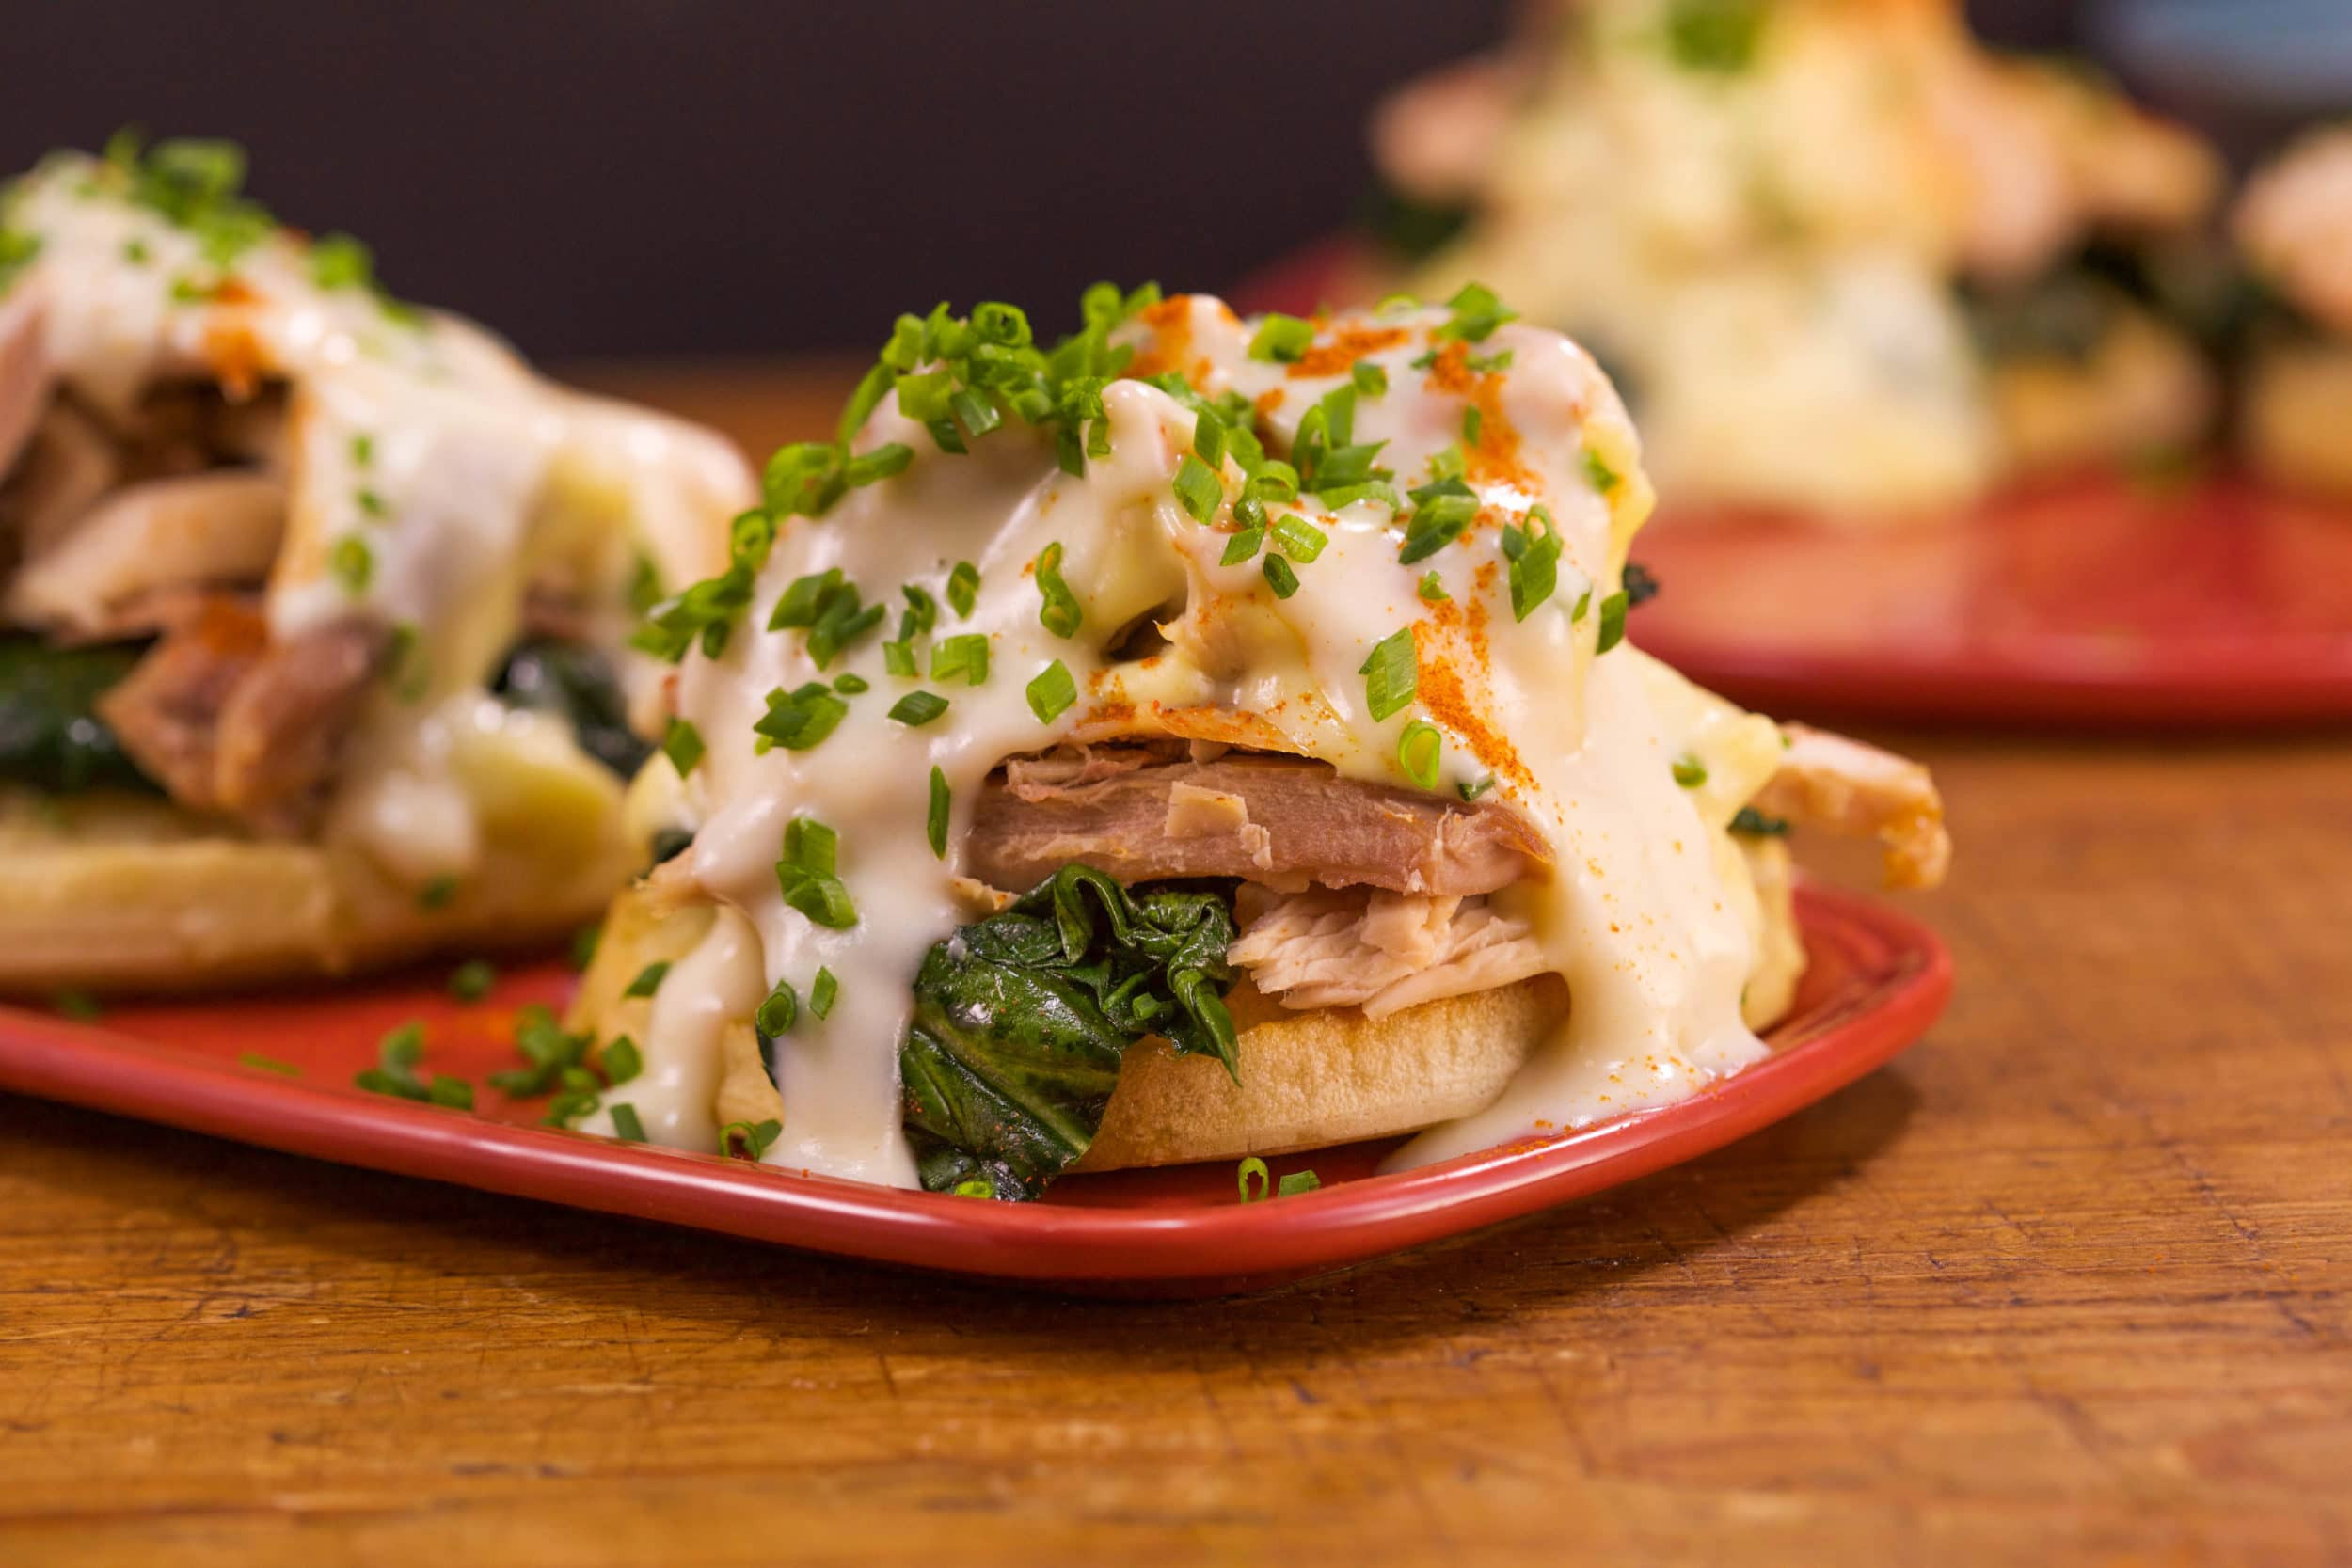 What'S For Dinner Tonight Rachael Ray  Breakfast for Dinner Turkey Benedicts Rachael Ray